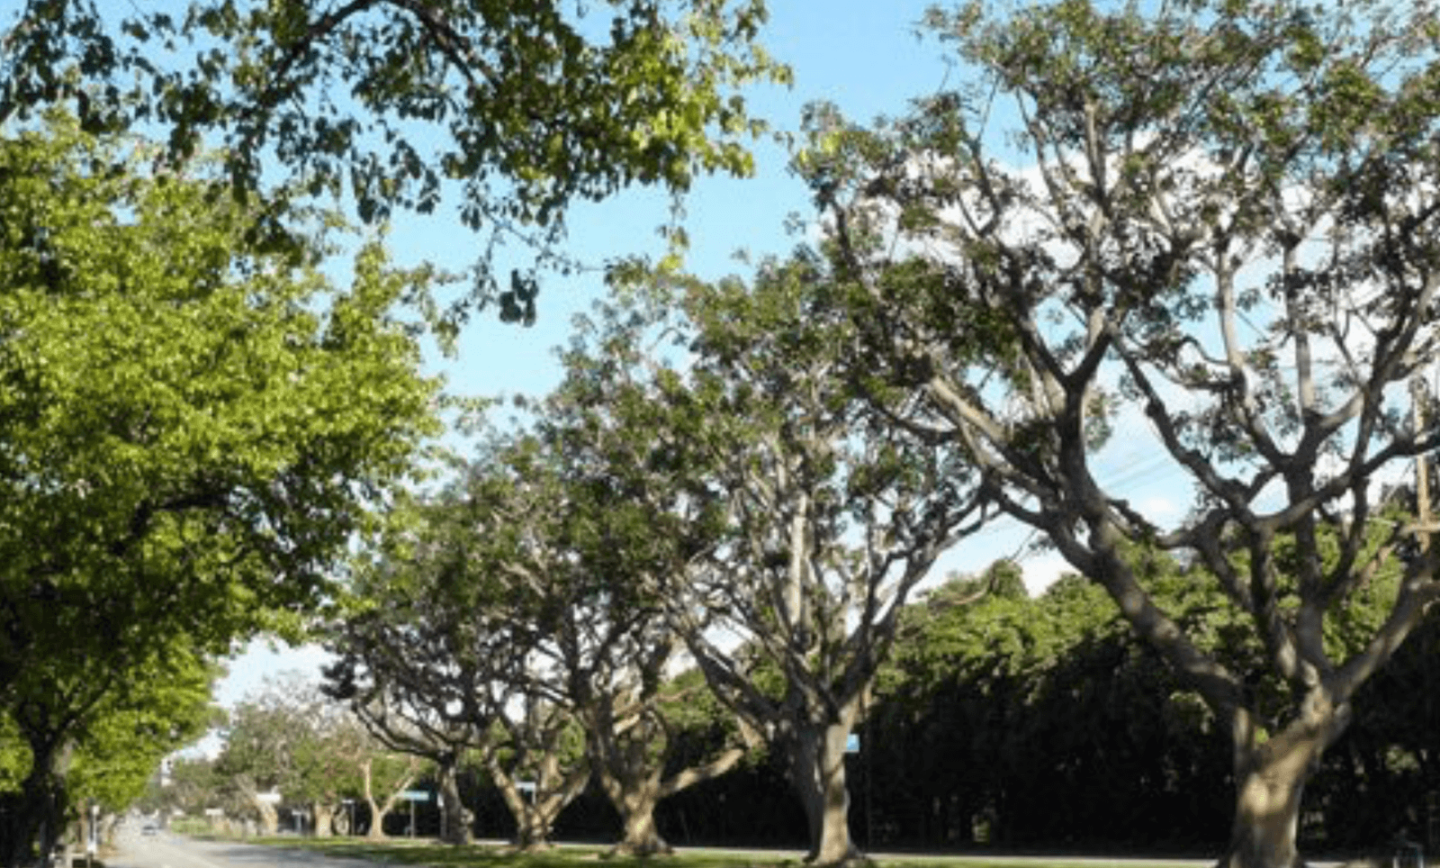 Brentwood Tree Forum July 10th